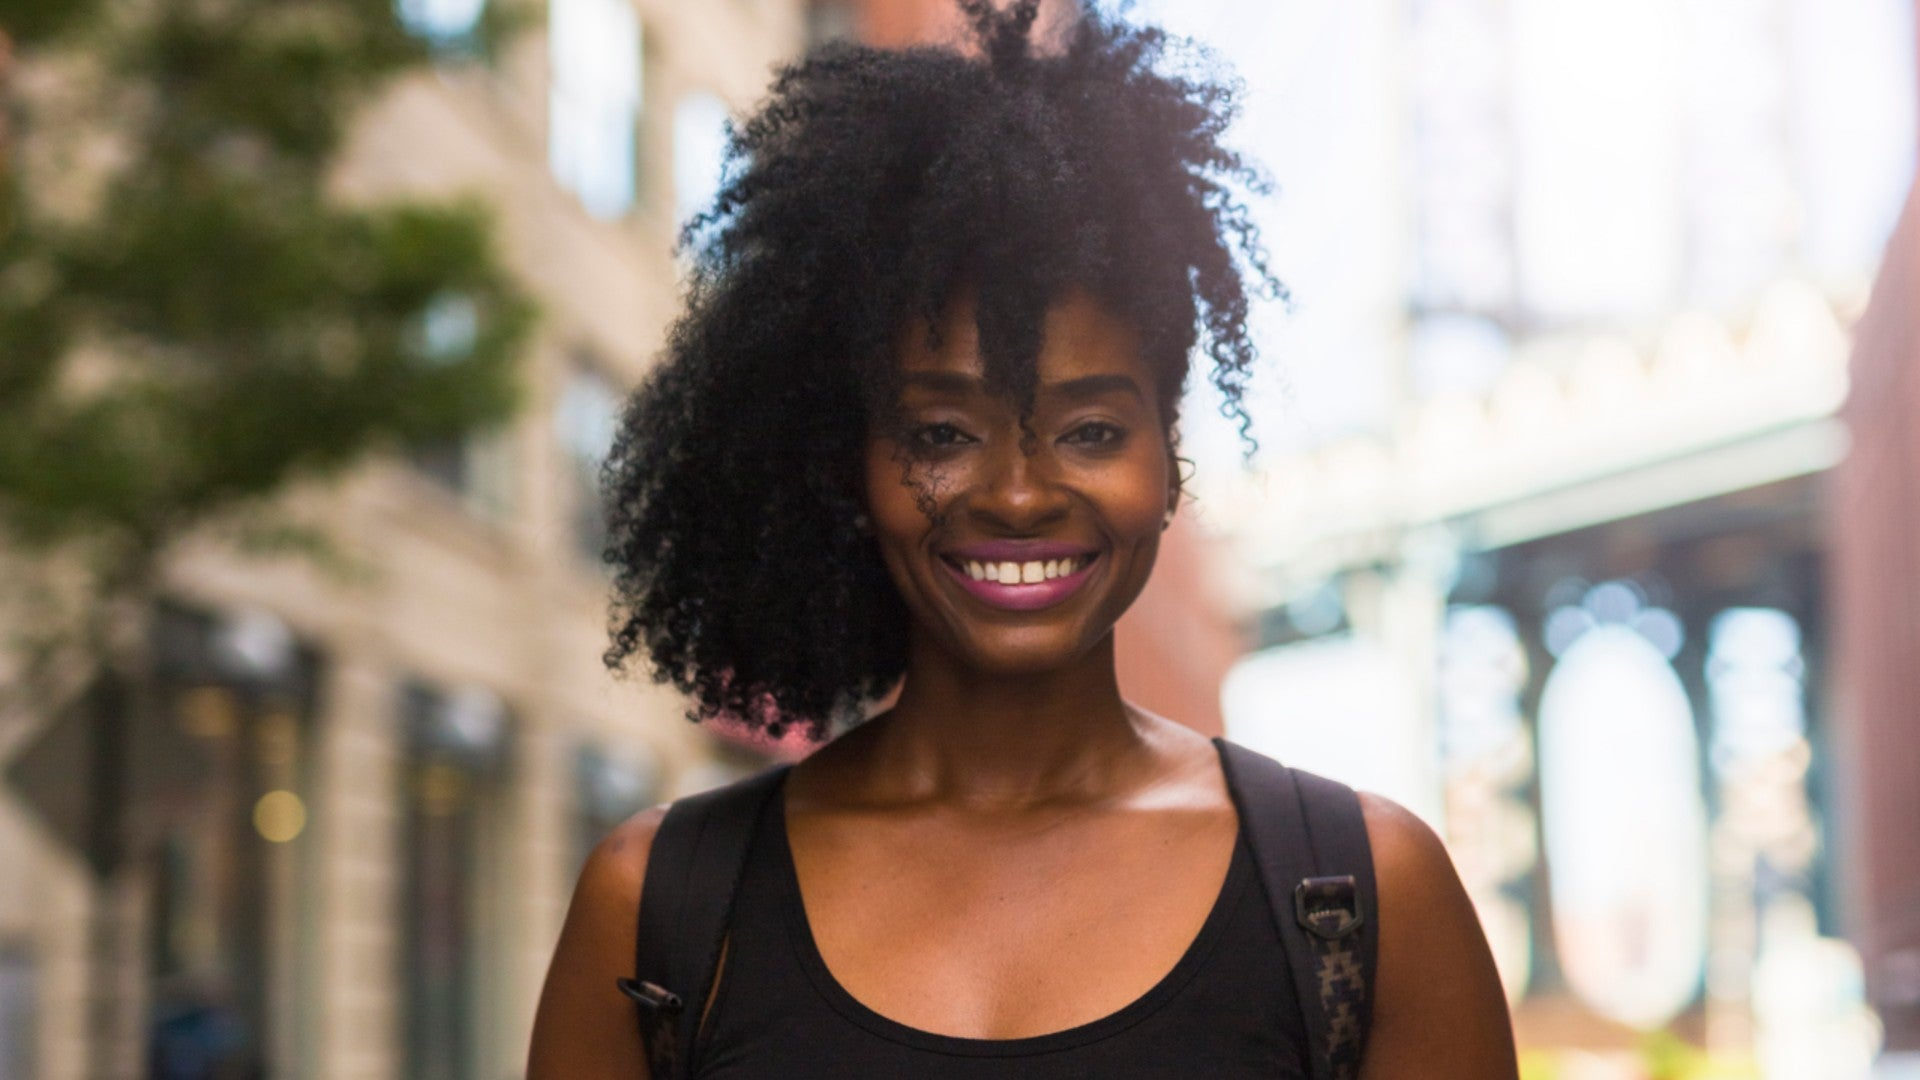 Hair Discrimination Is Now Illegal In The State Of New York